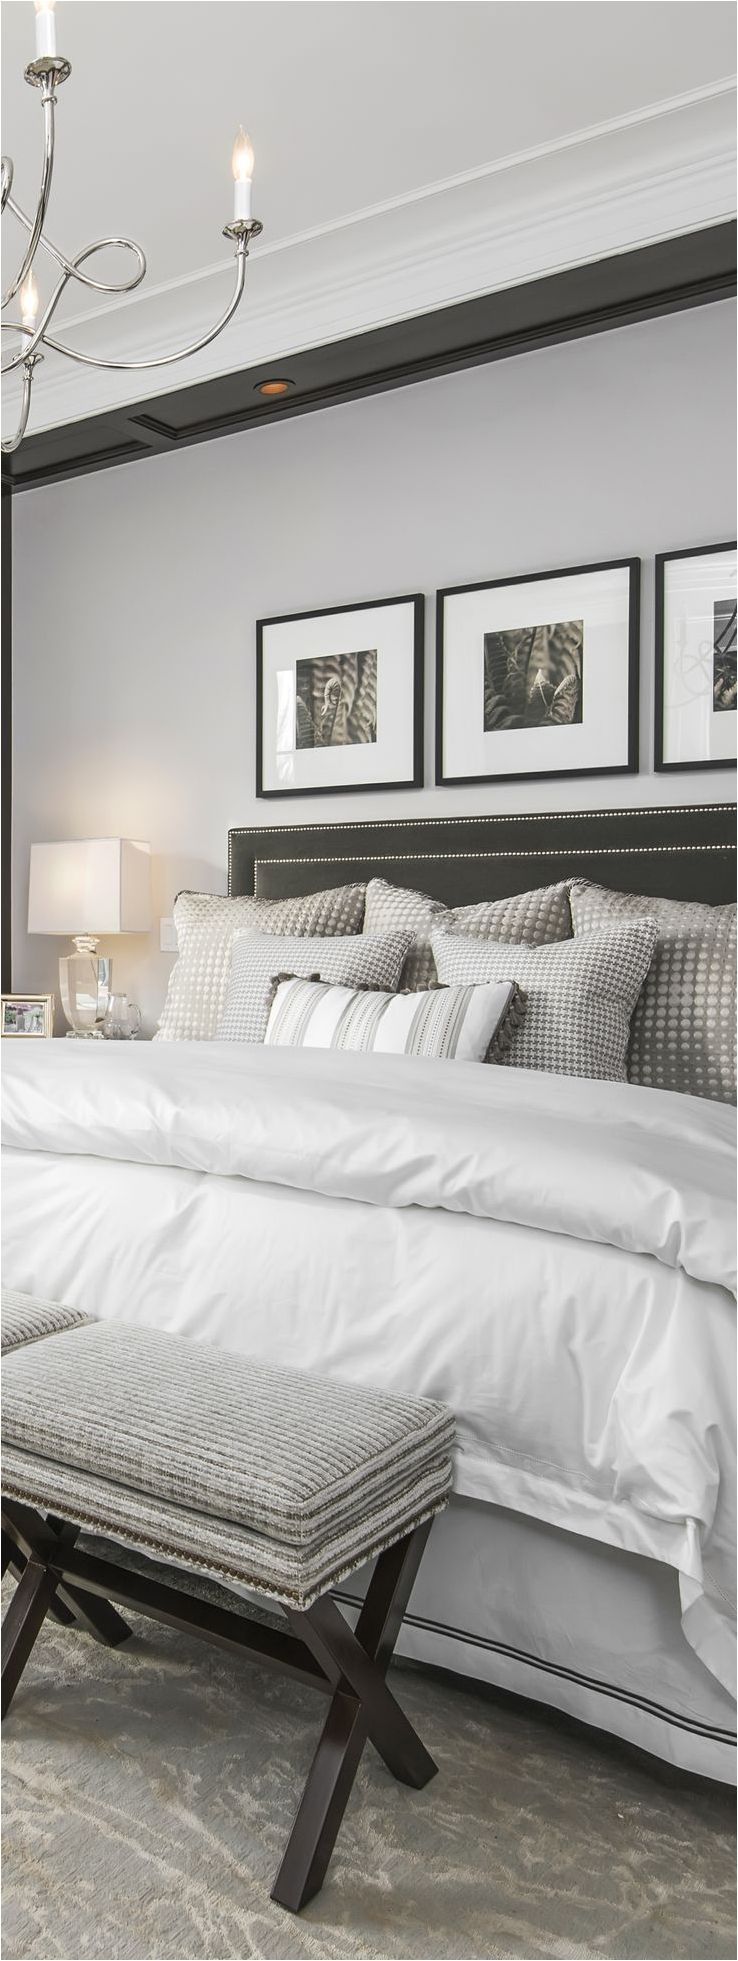 Master bedroom furniture  Bedroom Furniture Layout Really transform and make your perfect